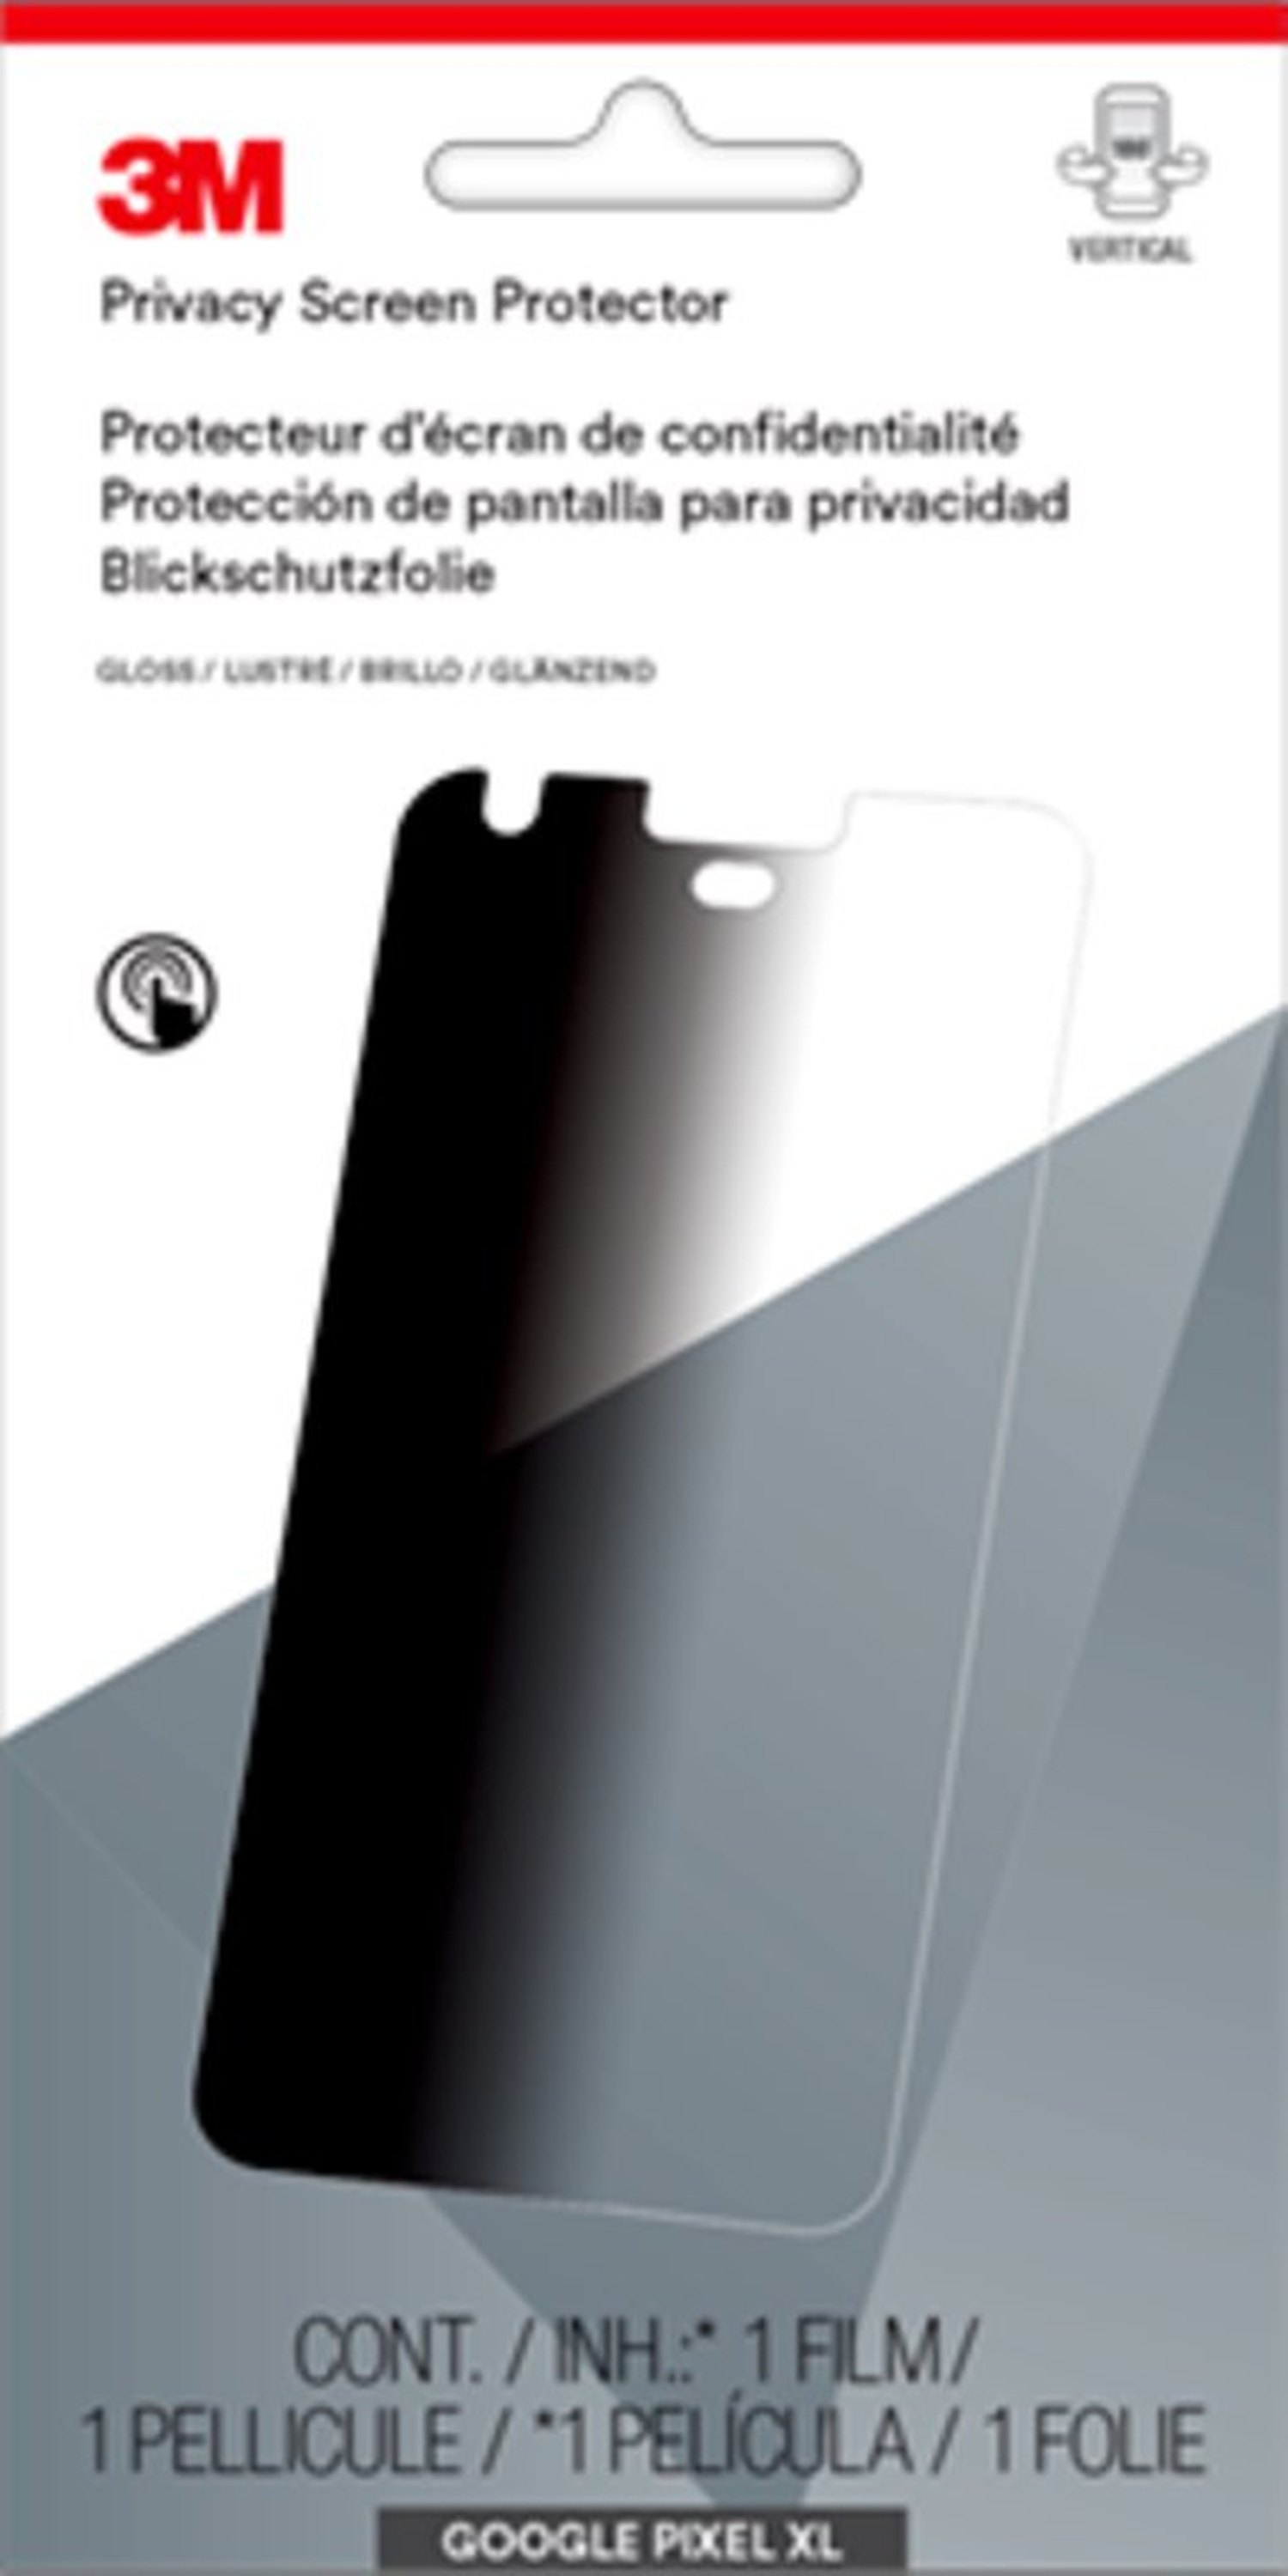 3M - OPTICAL SYSTEMS DIVISION MPPGG004   PRIVACY SCREEN PROTECTOR FOR